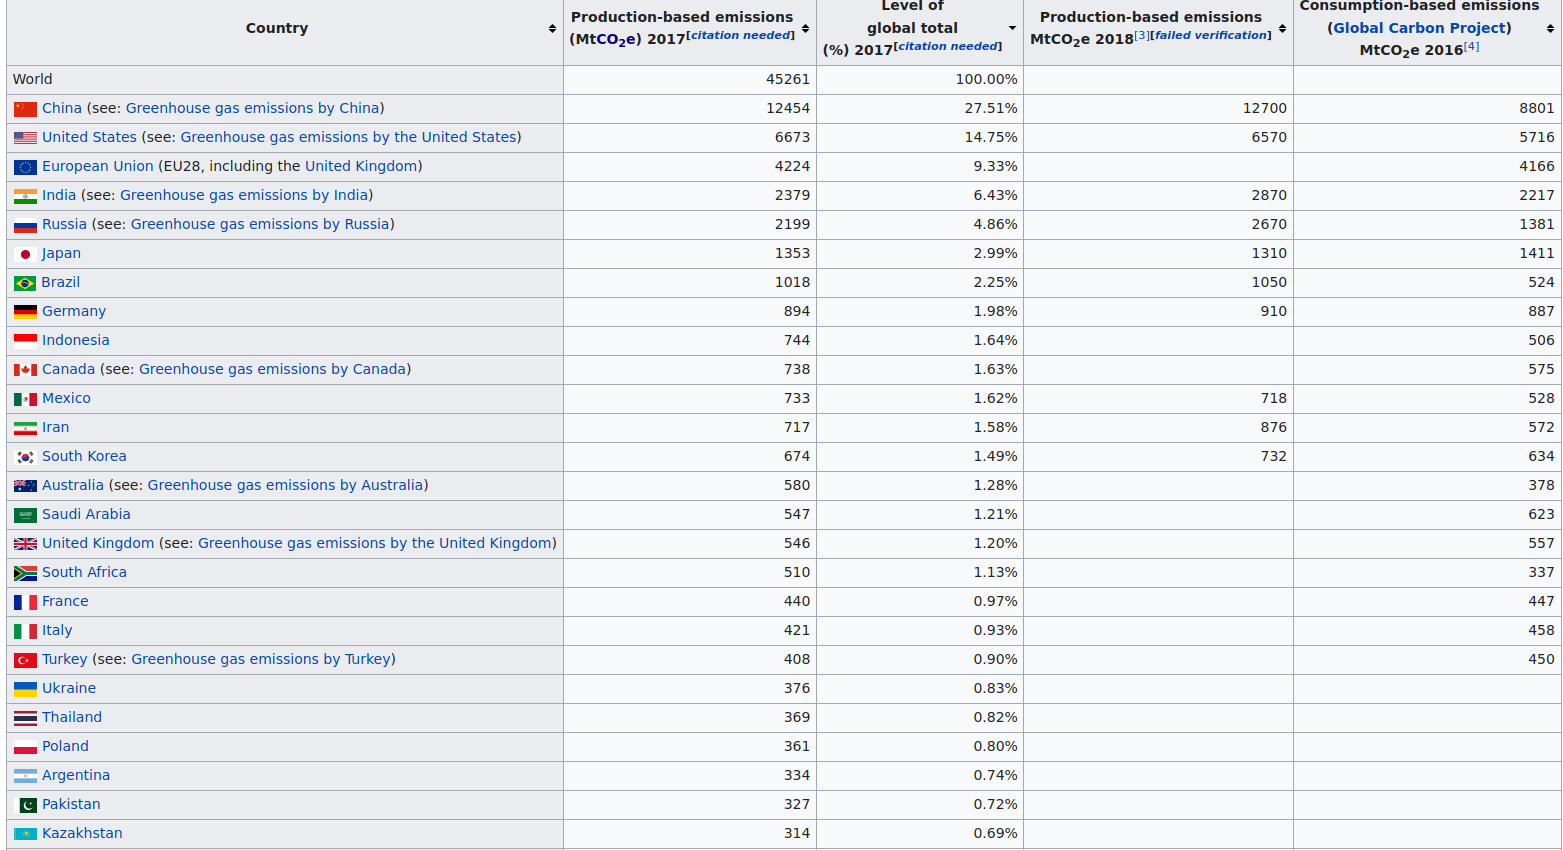 https://en.wikipedia.org/wiki/List_of_countries_by_greenhouse_gas_emissions